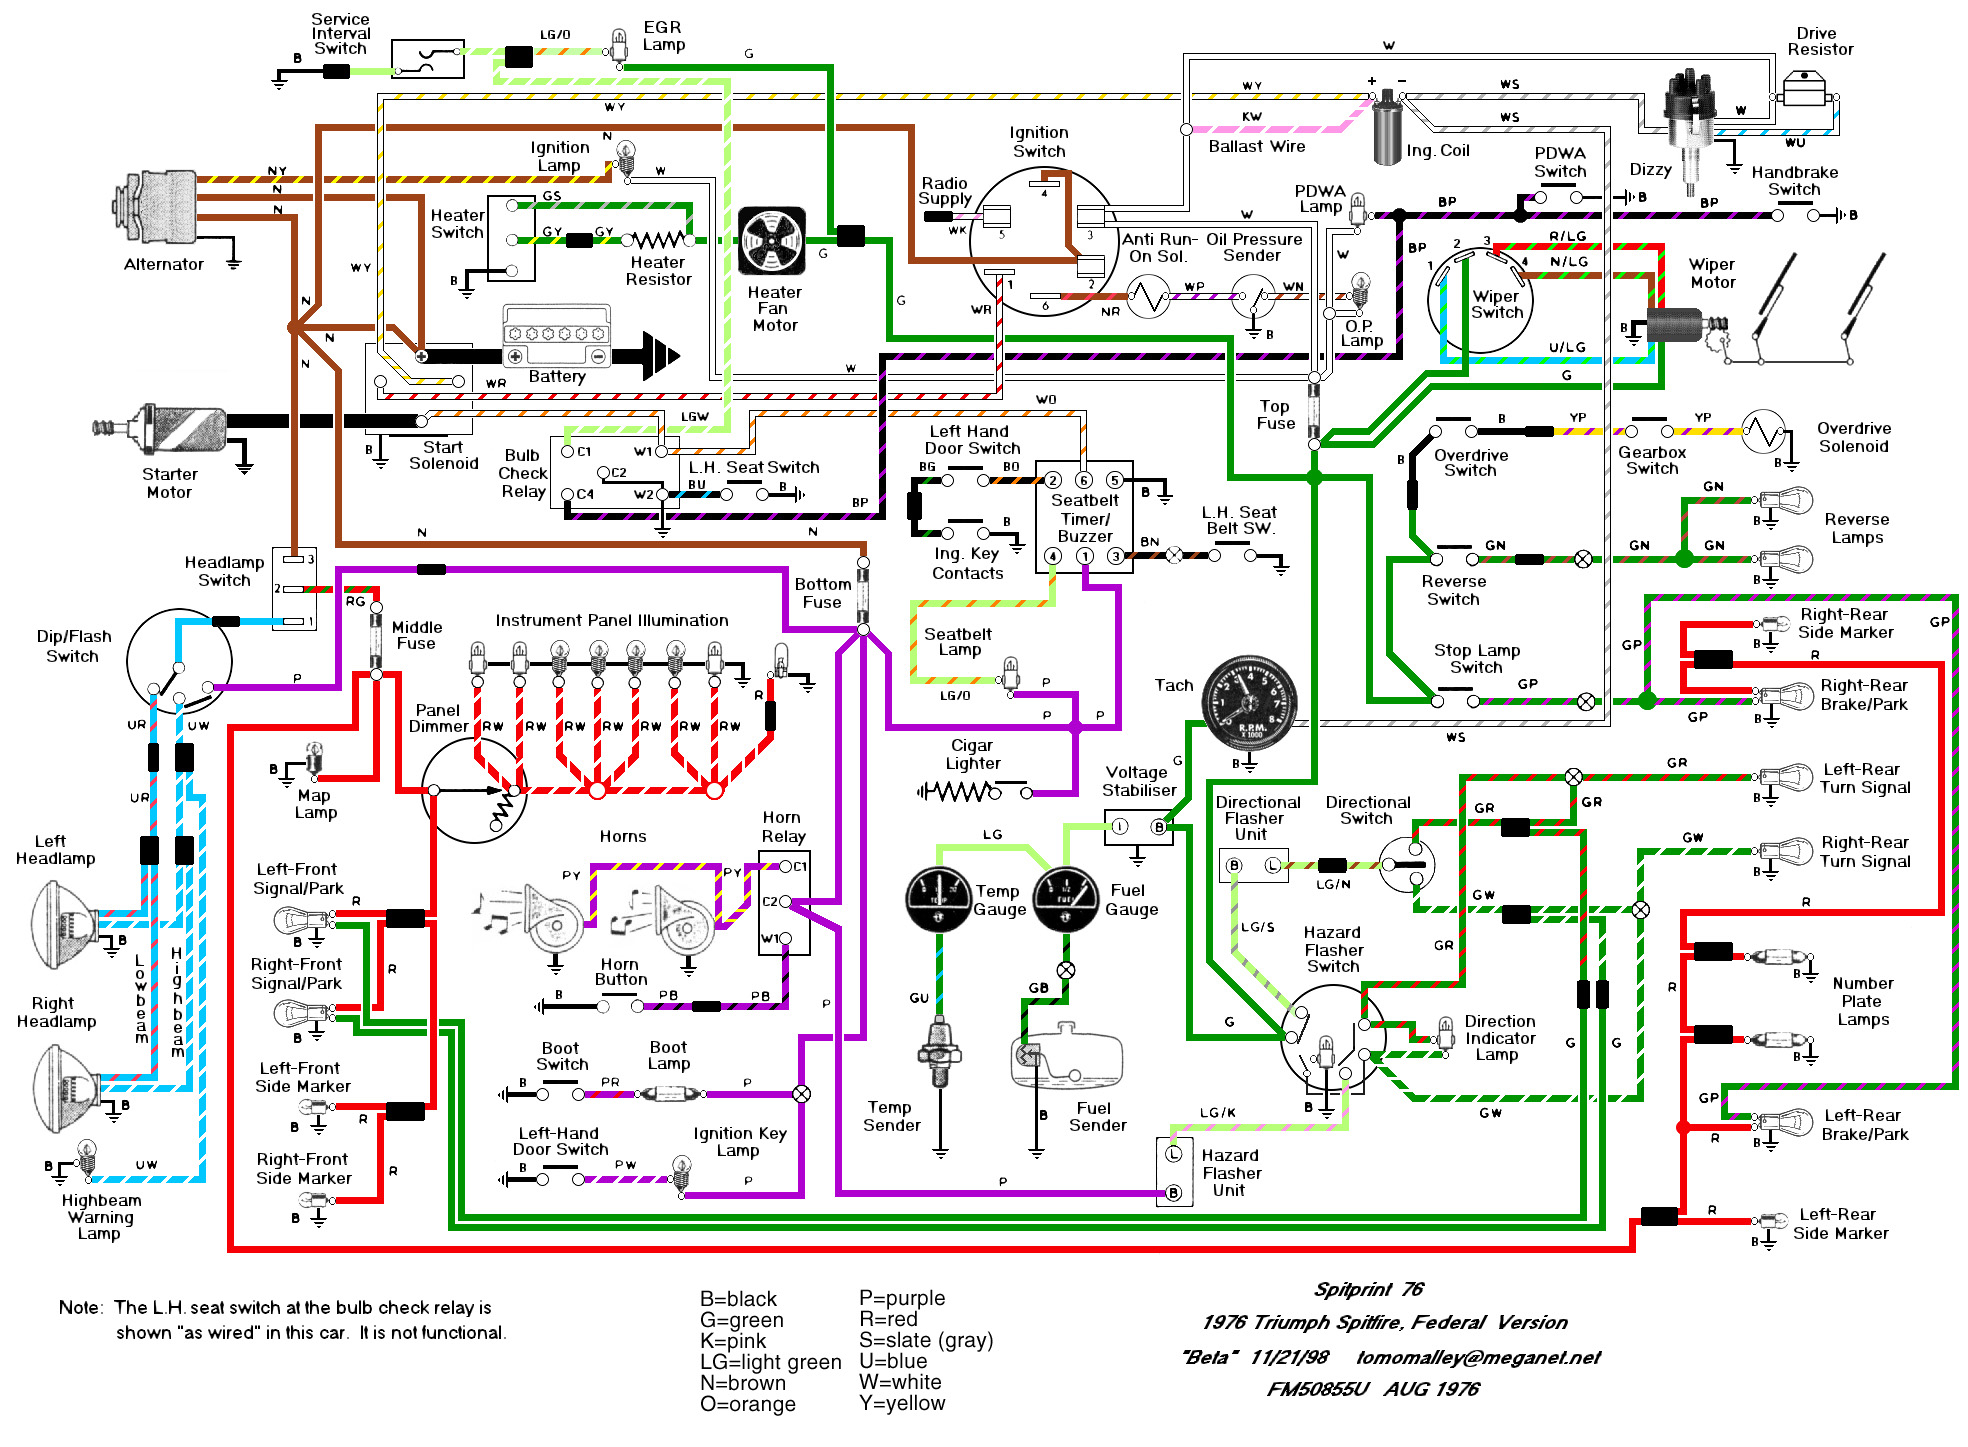 76diagram wiring gremlins please help spitfire & gt6 forum triumph morris minor wiring diagram pdf at soozxer.org